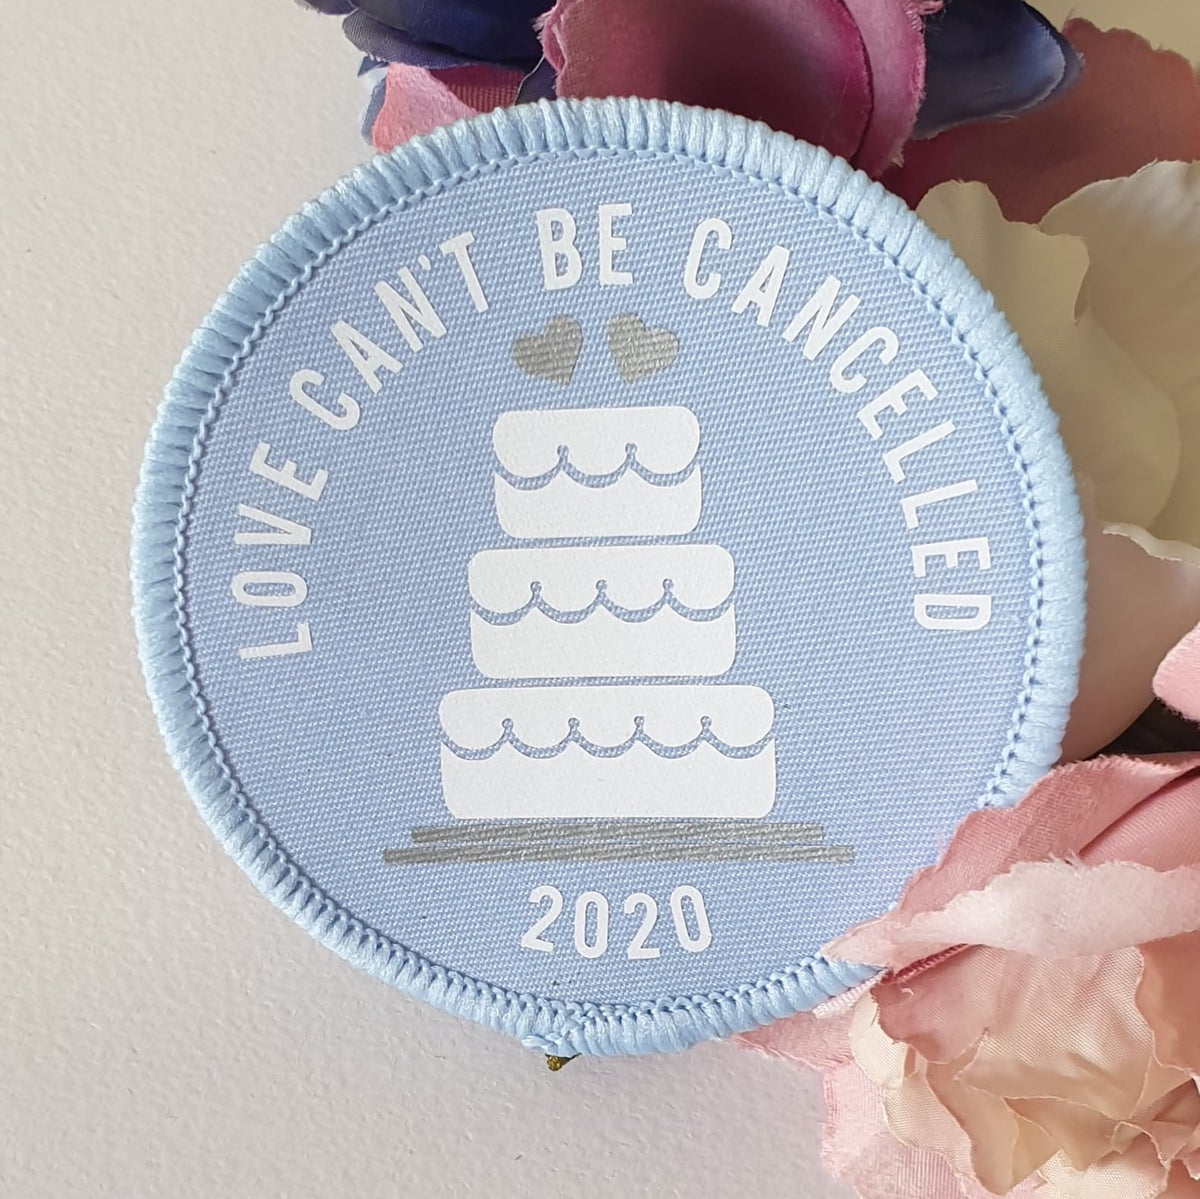 Lockdown wedding (love can't be cancelled) patch